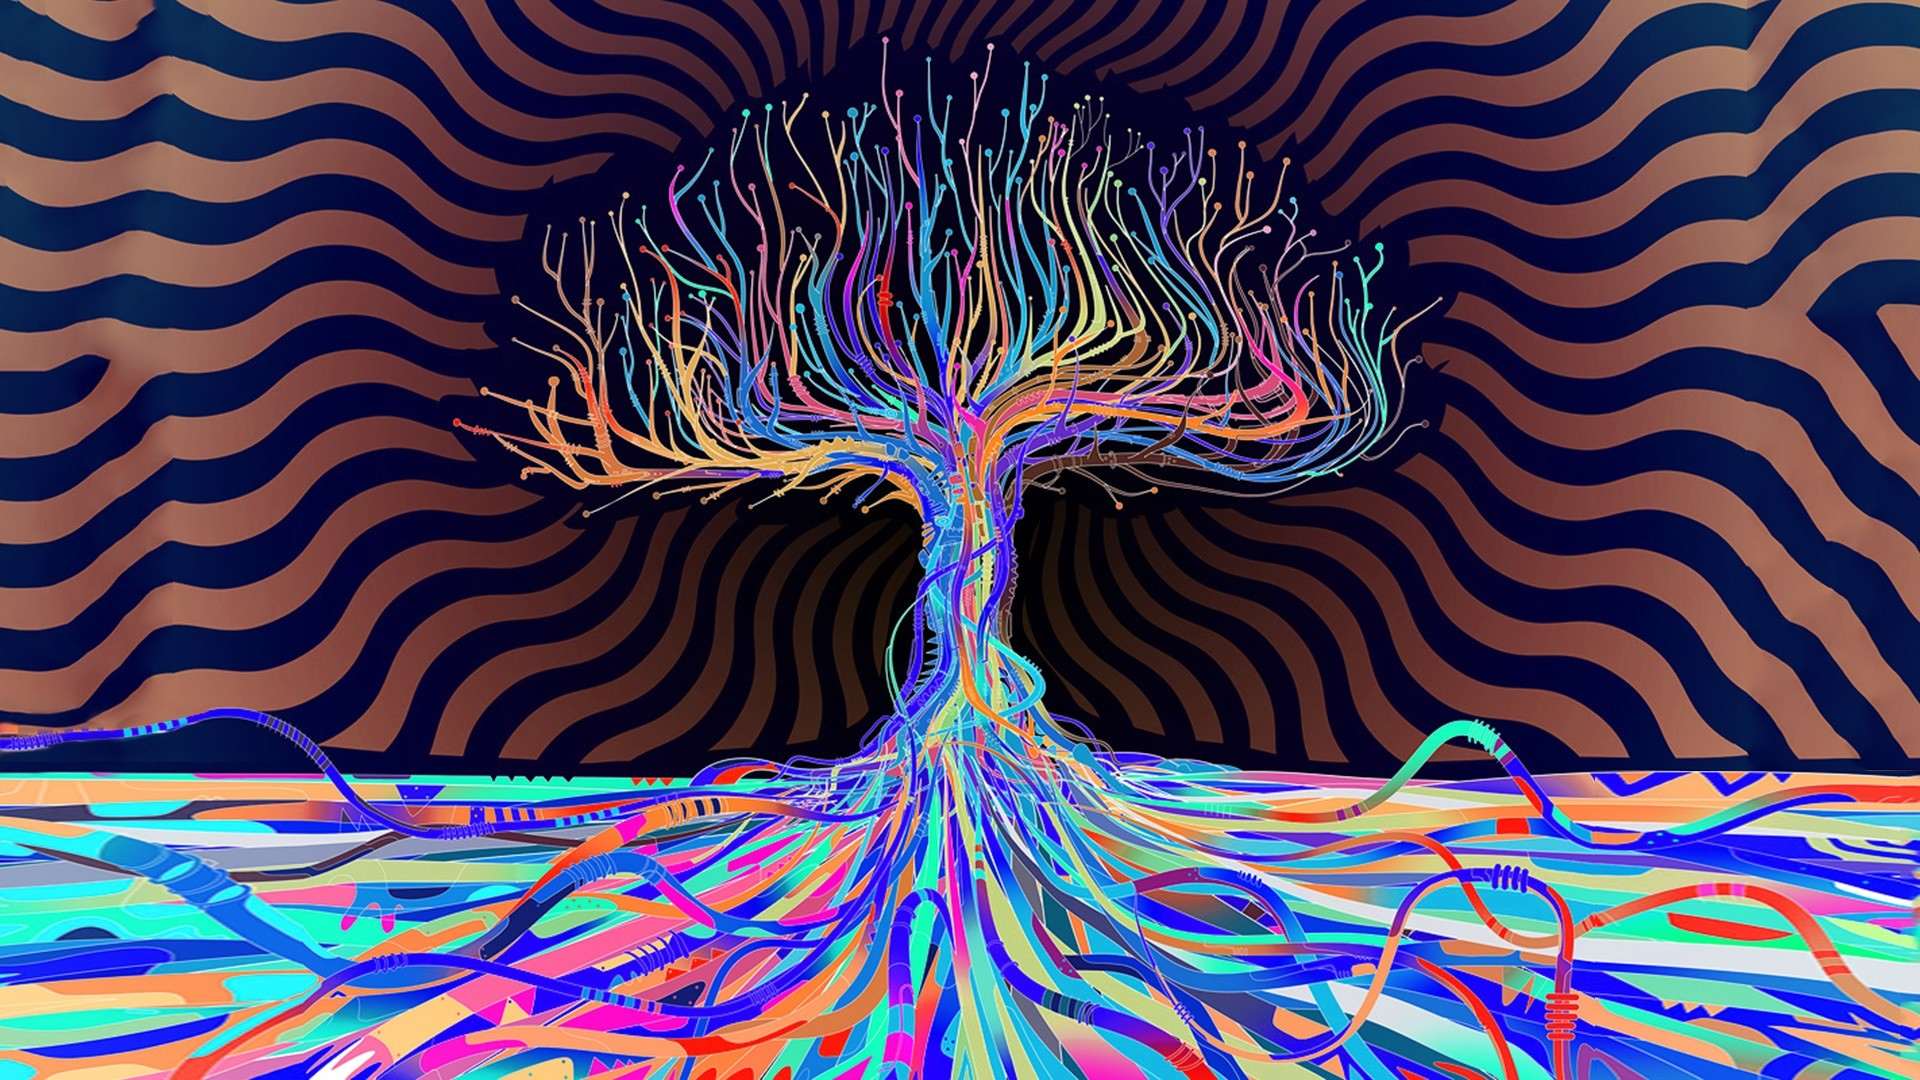 Trippy Hd Wallpaper 72 Pictures